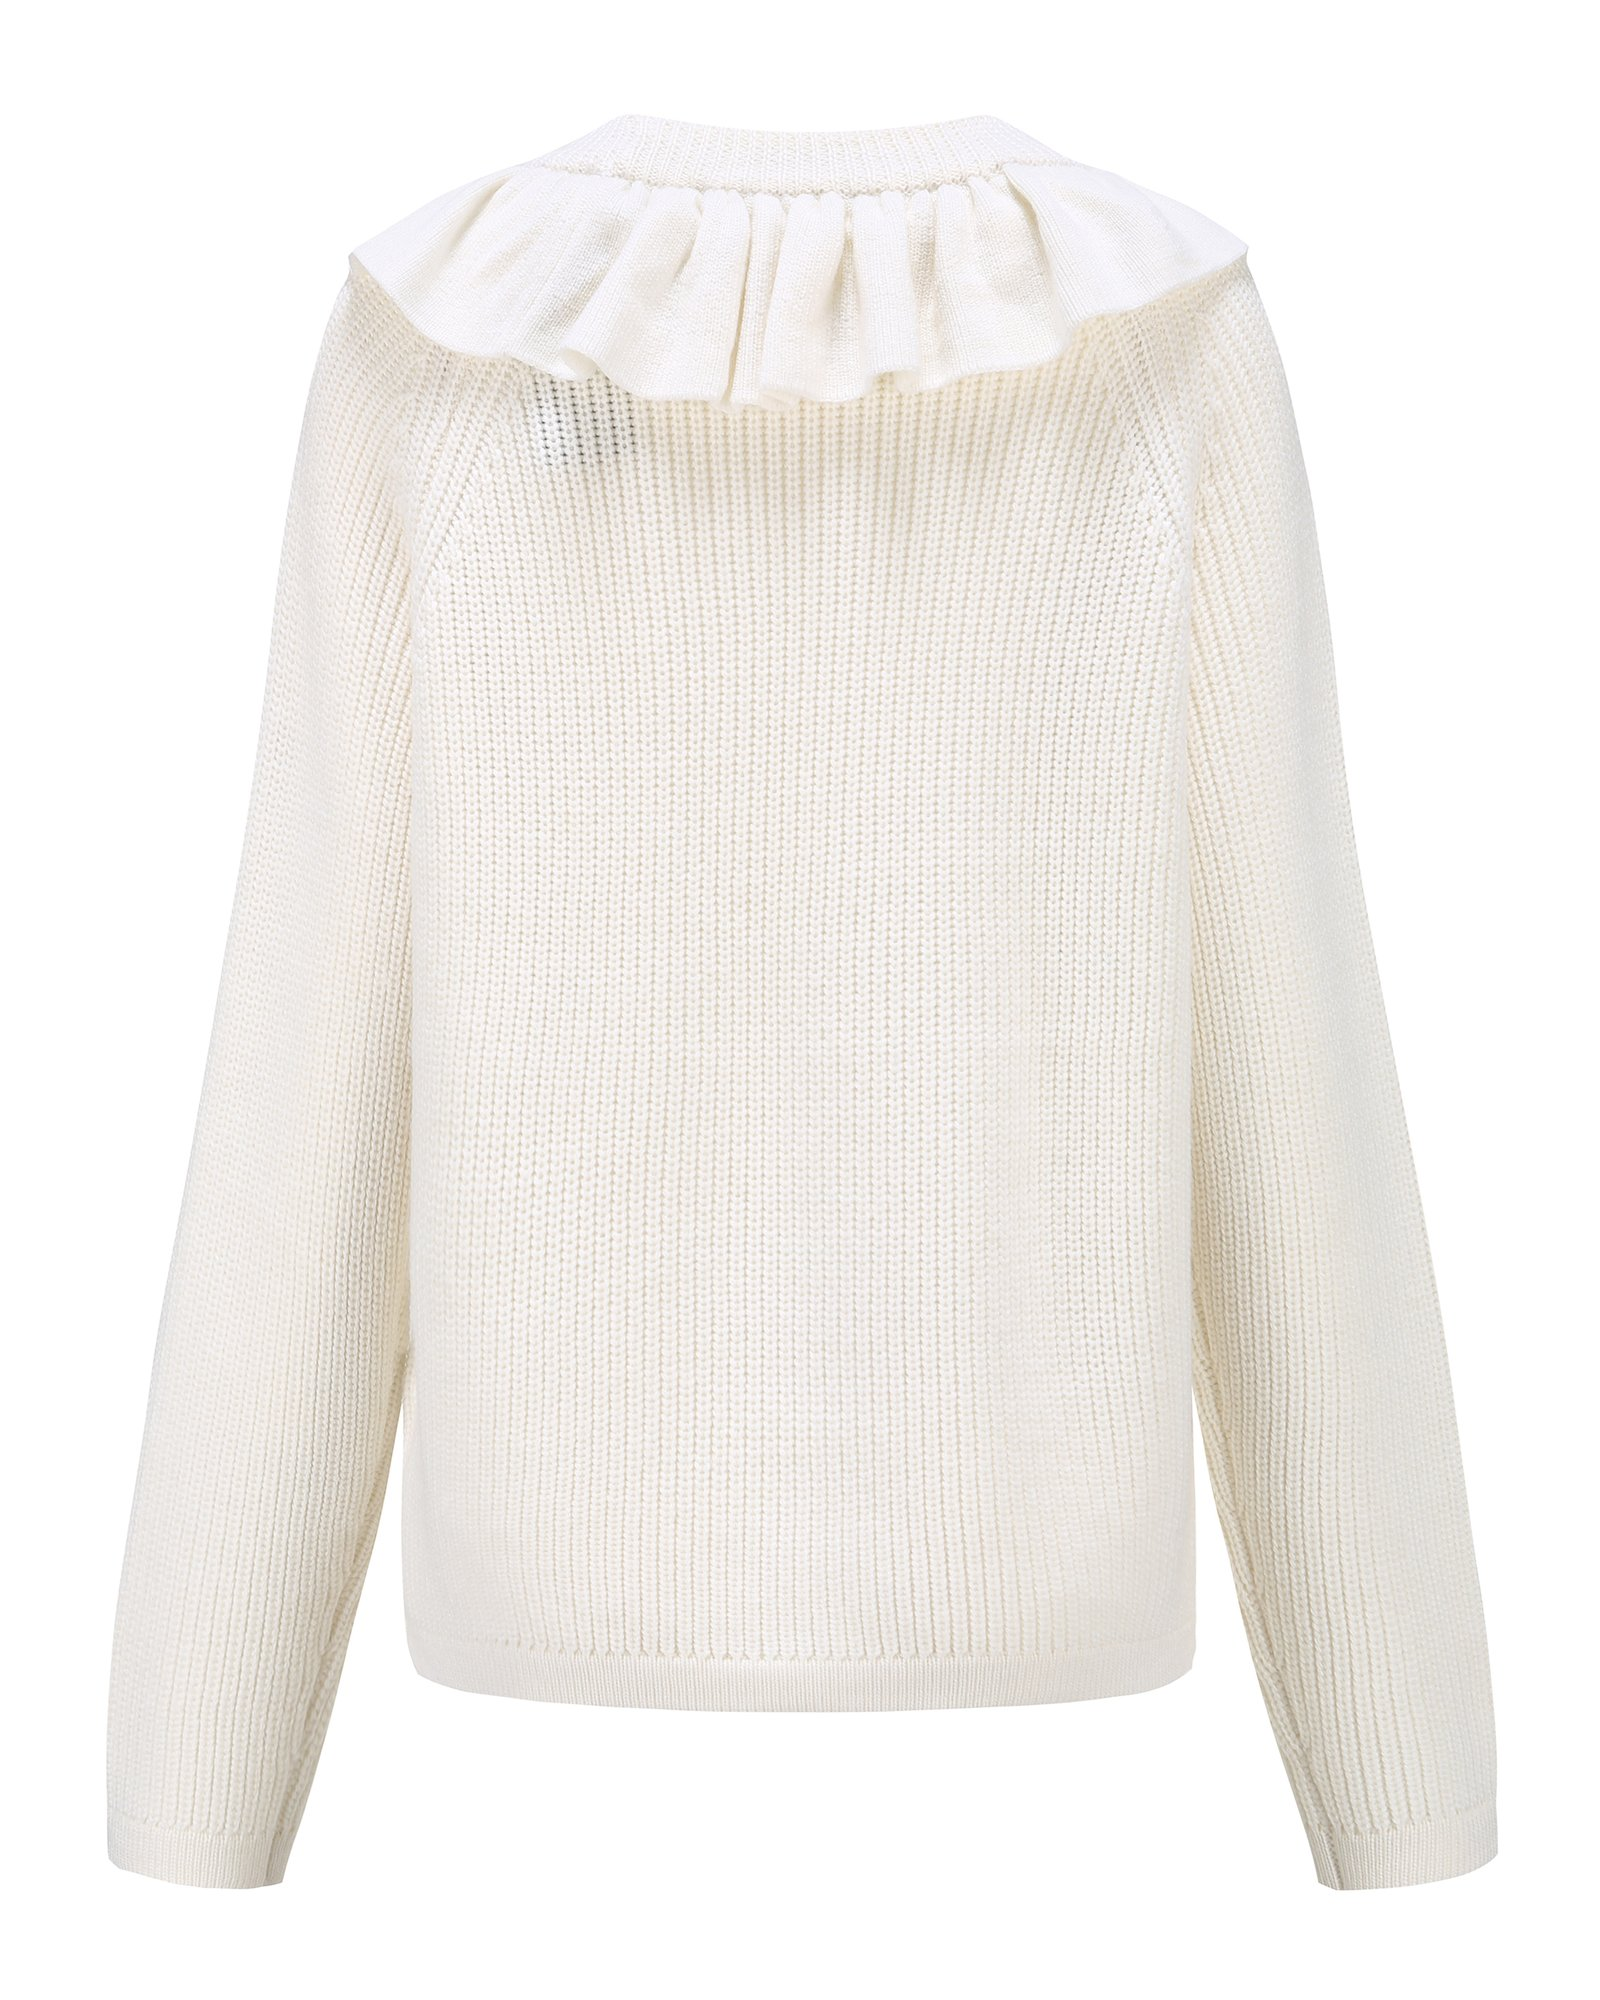 Montana Jumper with Neck Frills by PAPER London on curated-crowd.com